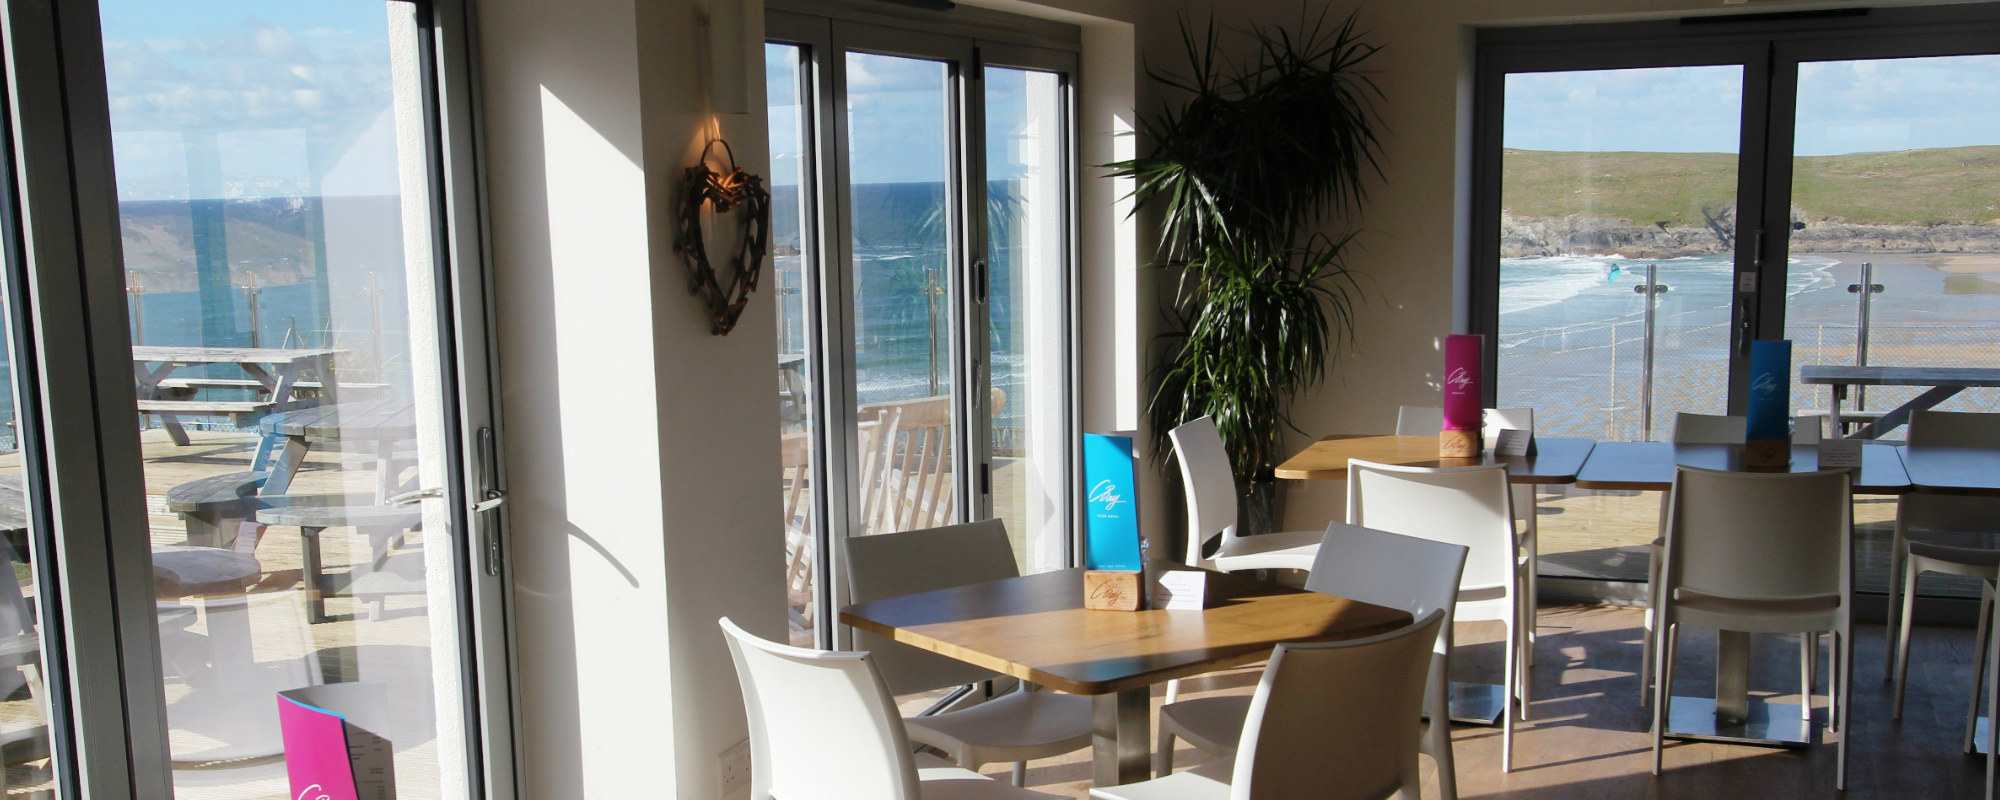 C Bay Cafe Bar Bistro - Welcome to Crantock Bay